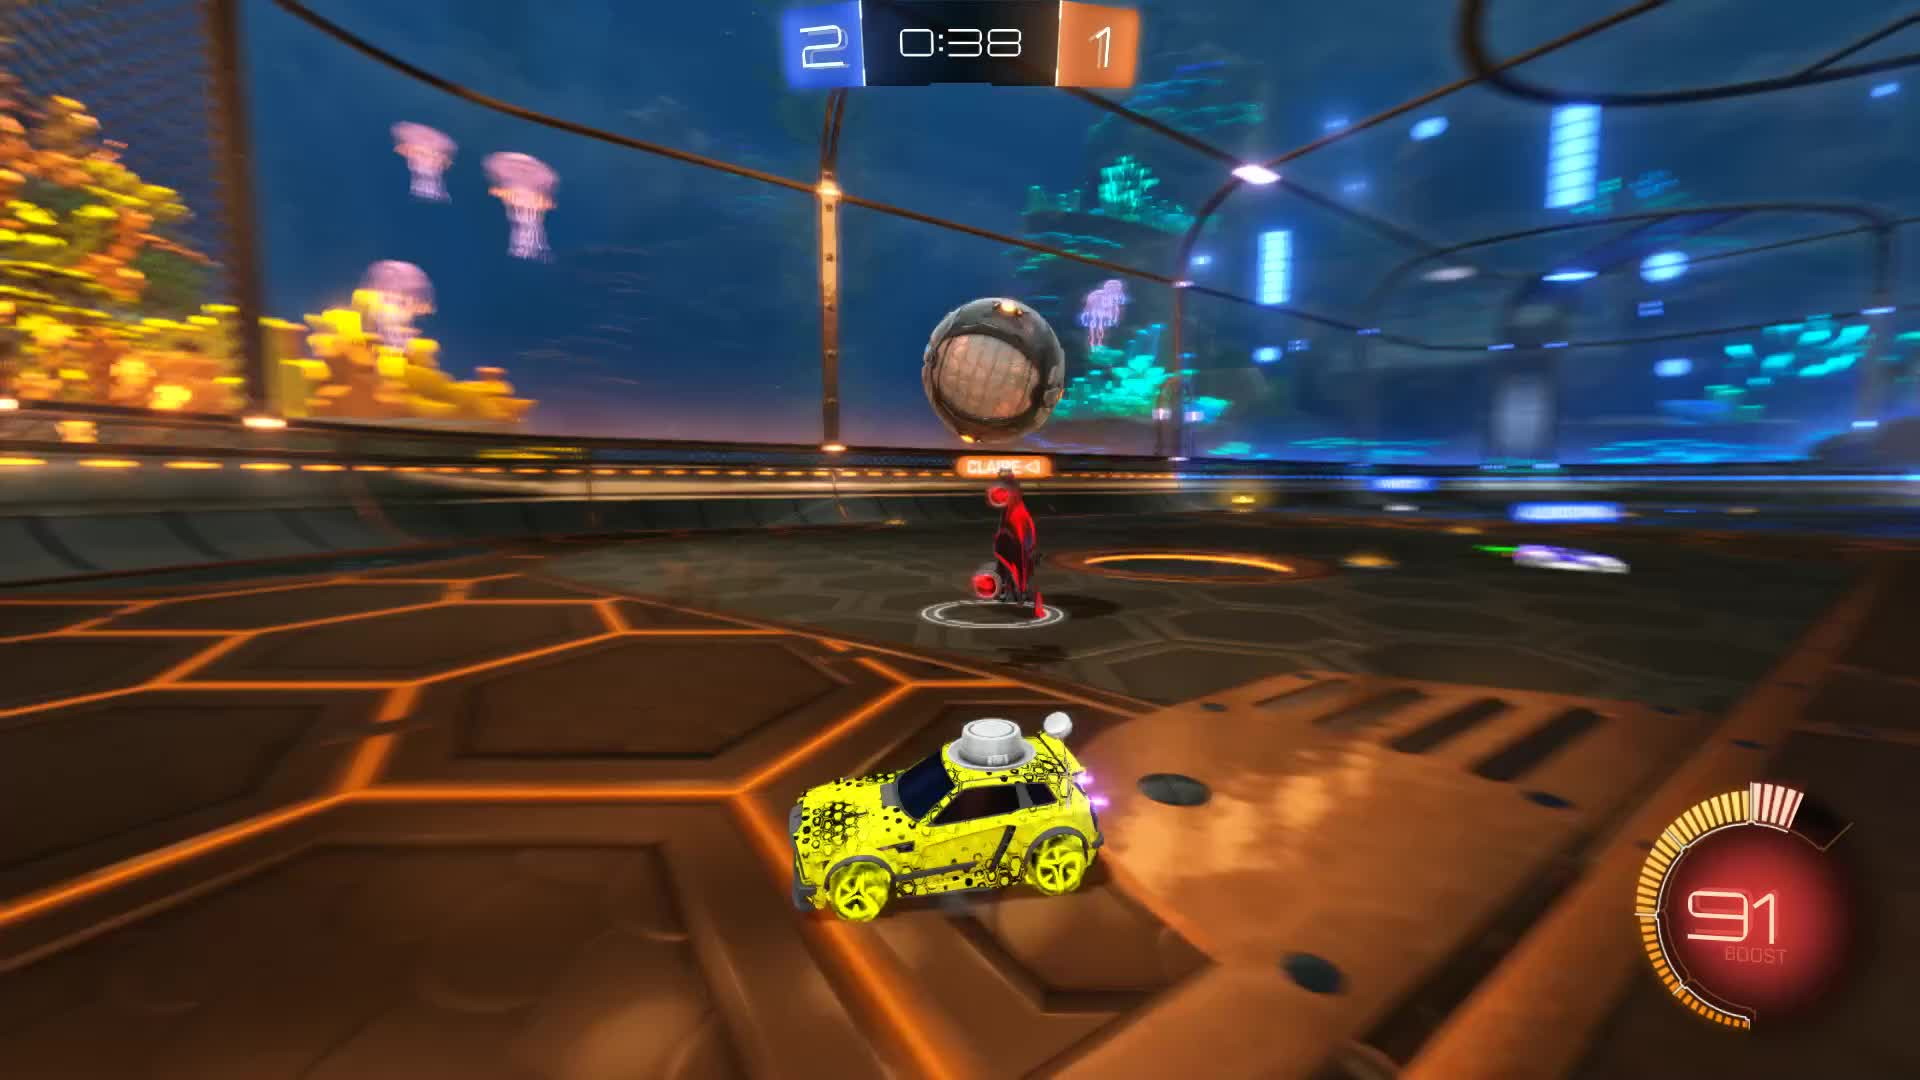 Gif Your Game, GifYourGame, Goal, Rocket League, RocketLeague, Z Josh, Goal 4: Z Josh GIFs